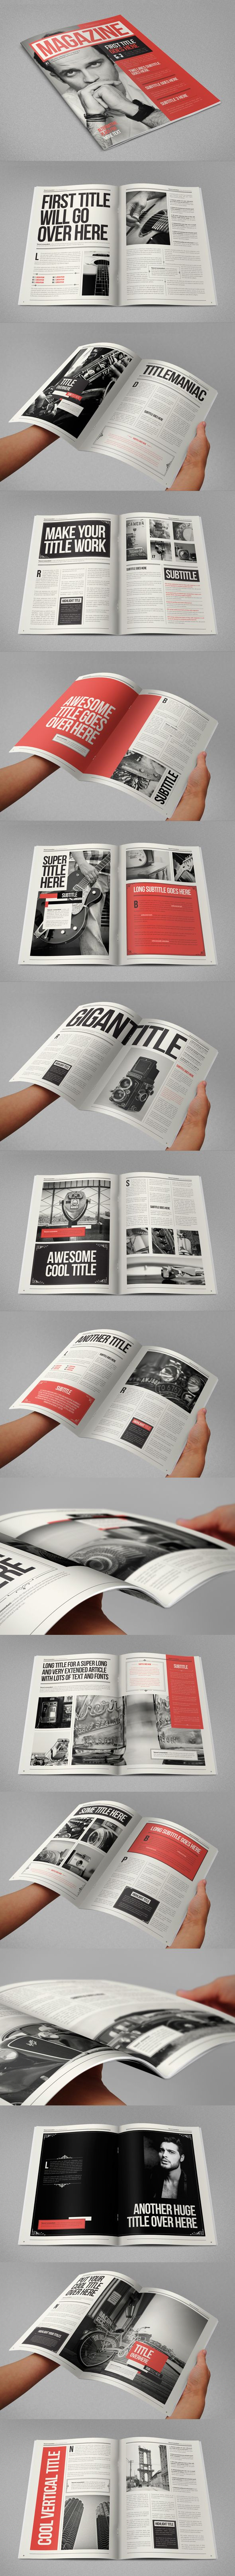 Layout design / Retro Vintage Magazine on Editorial Design Served